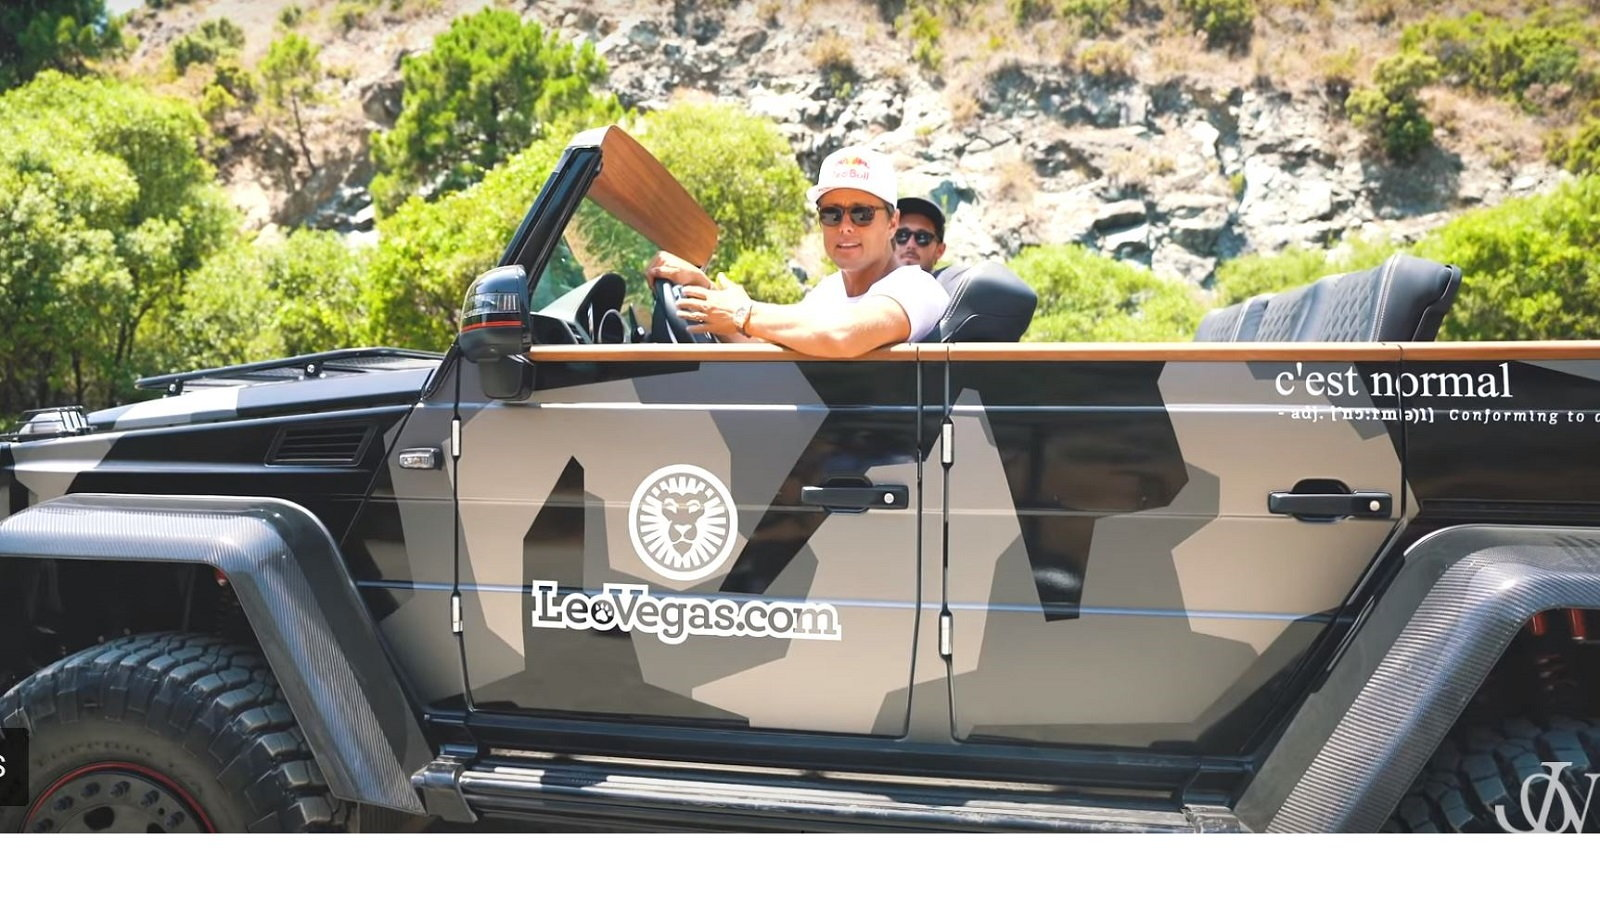 So what made Olsson decide to cut the roof off?